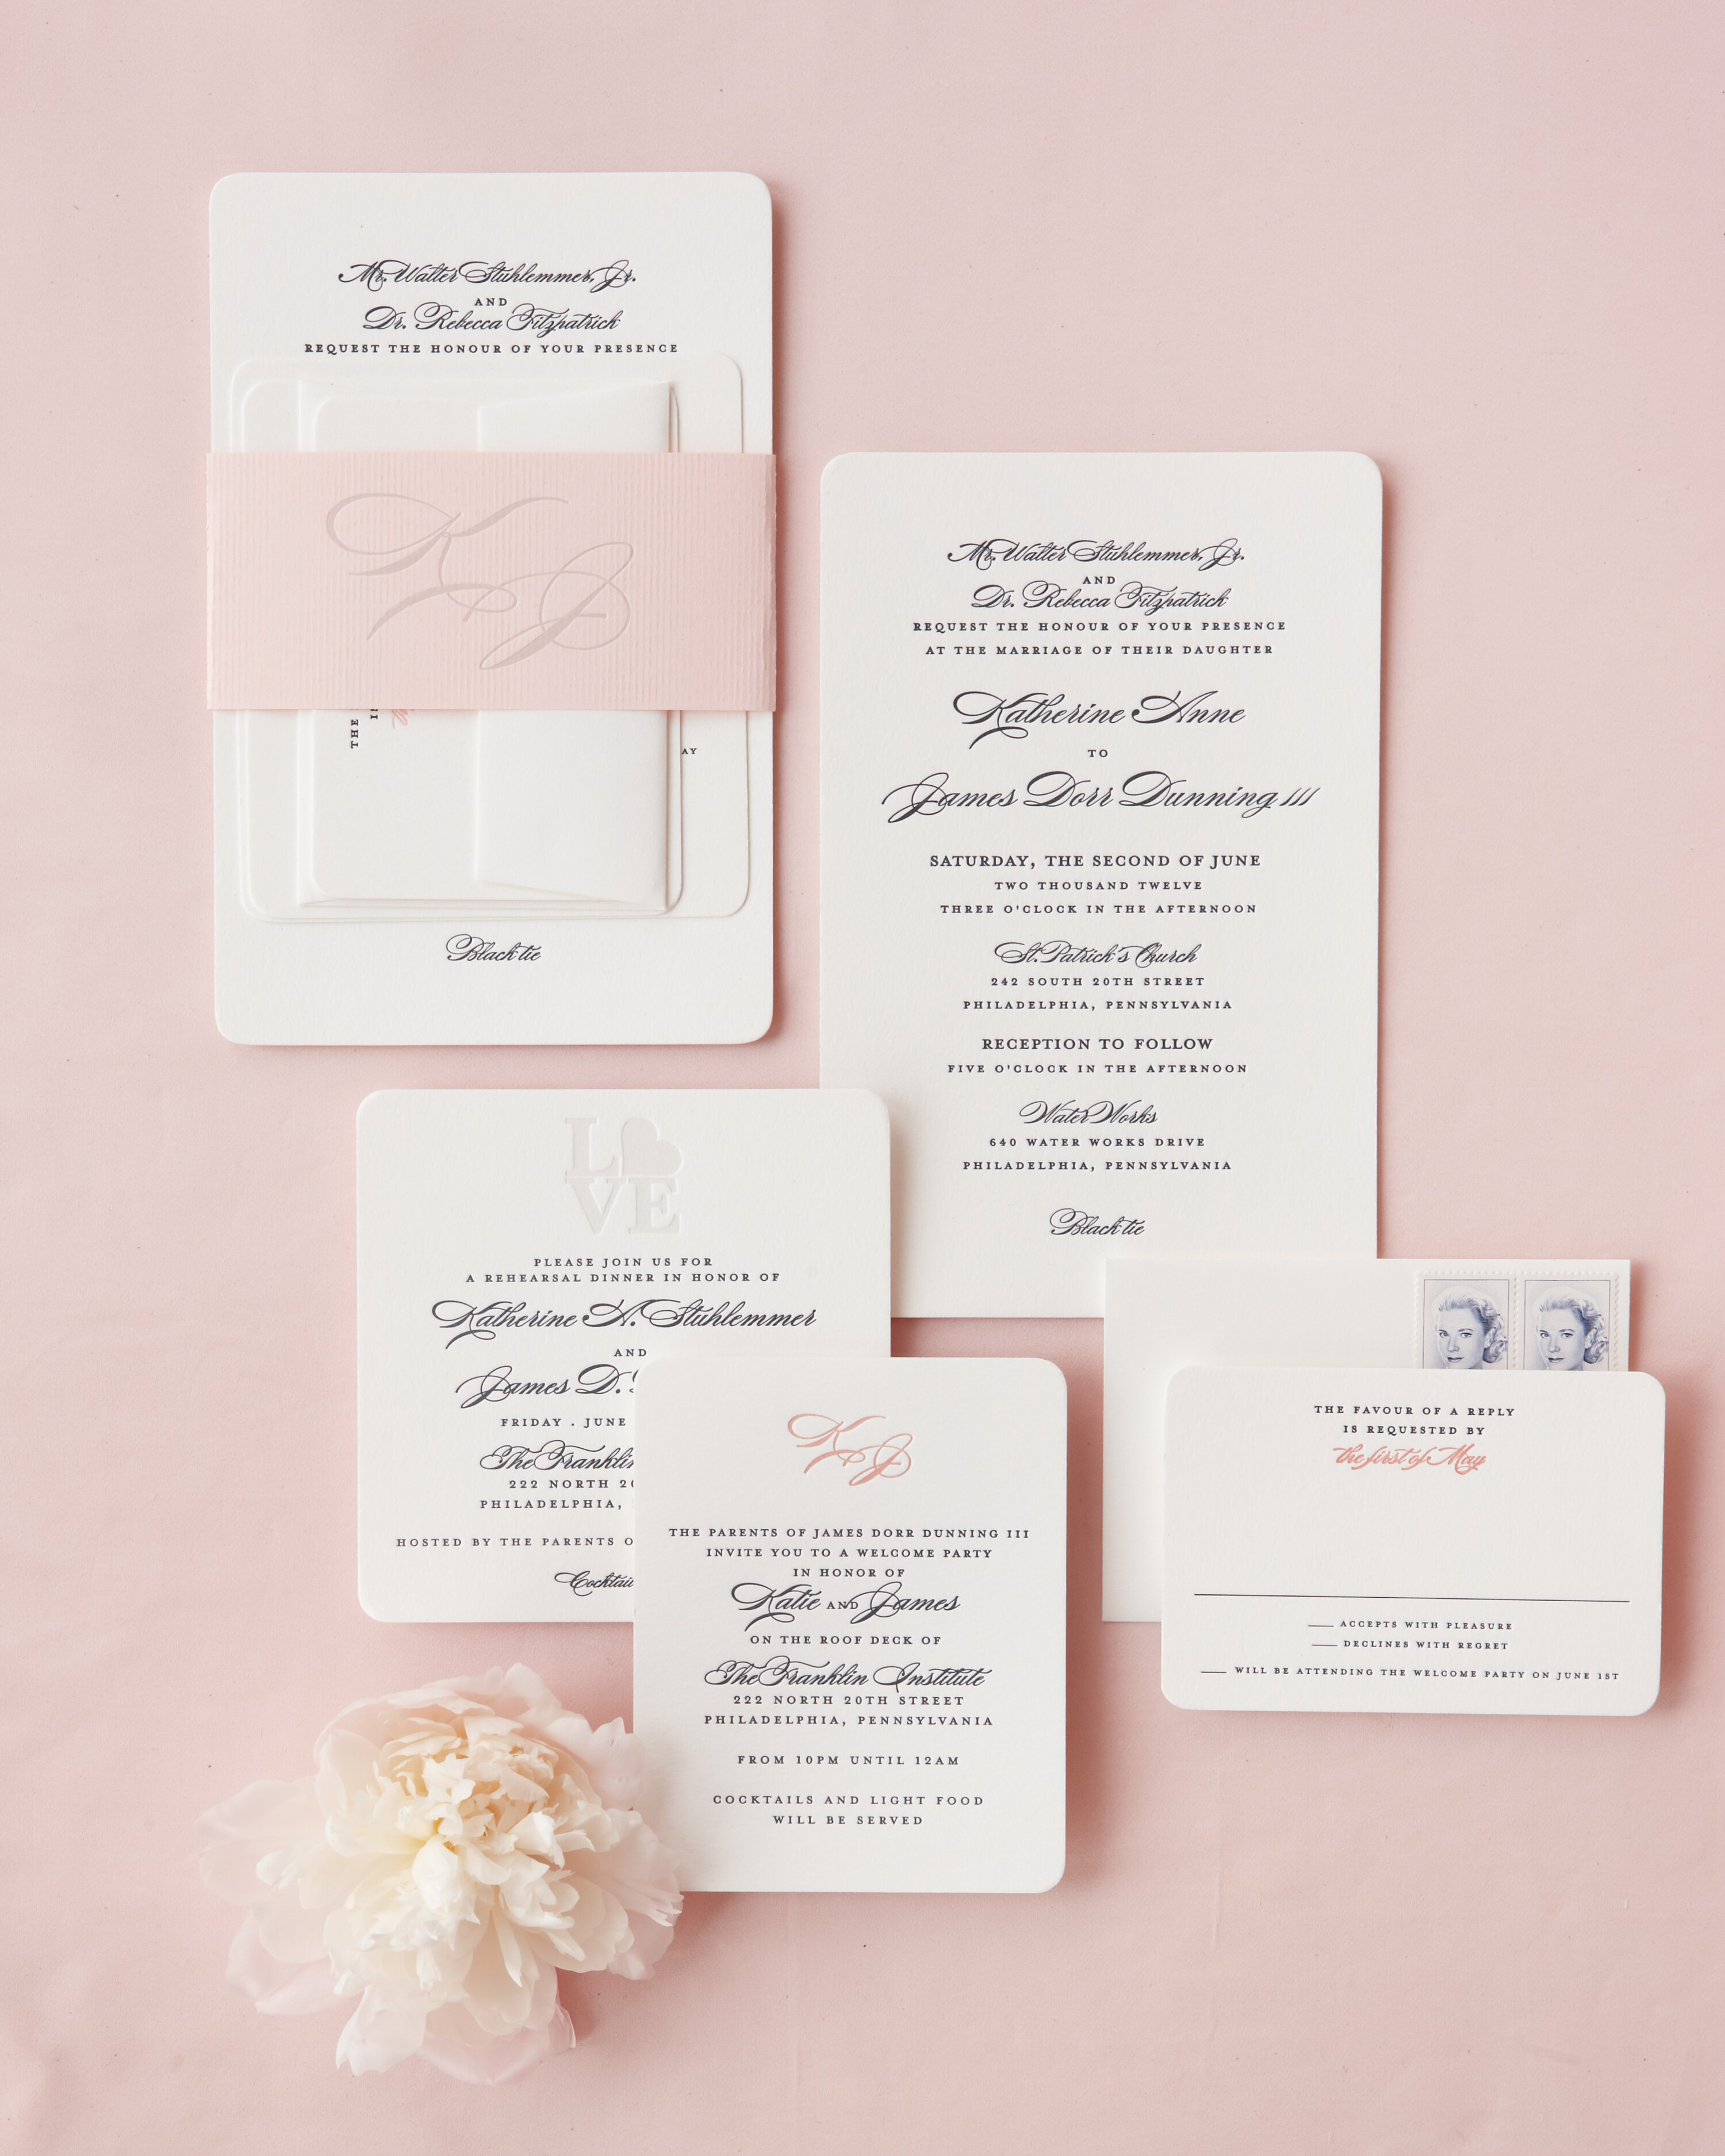 Classic Wedding Invitations for Traditional Brides and Grooms ...